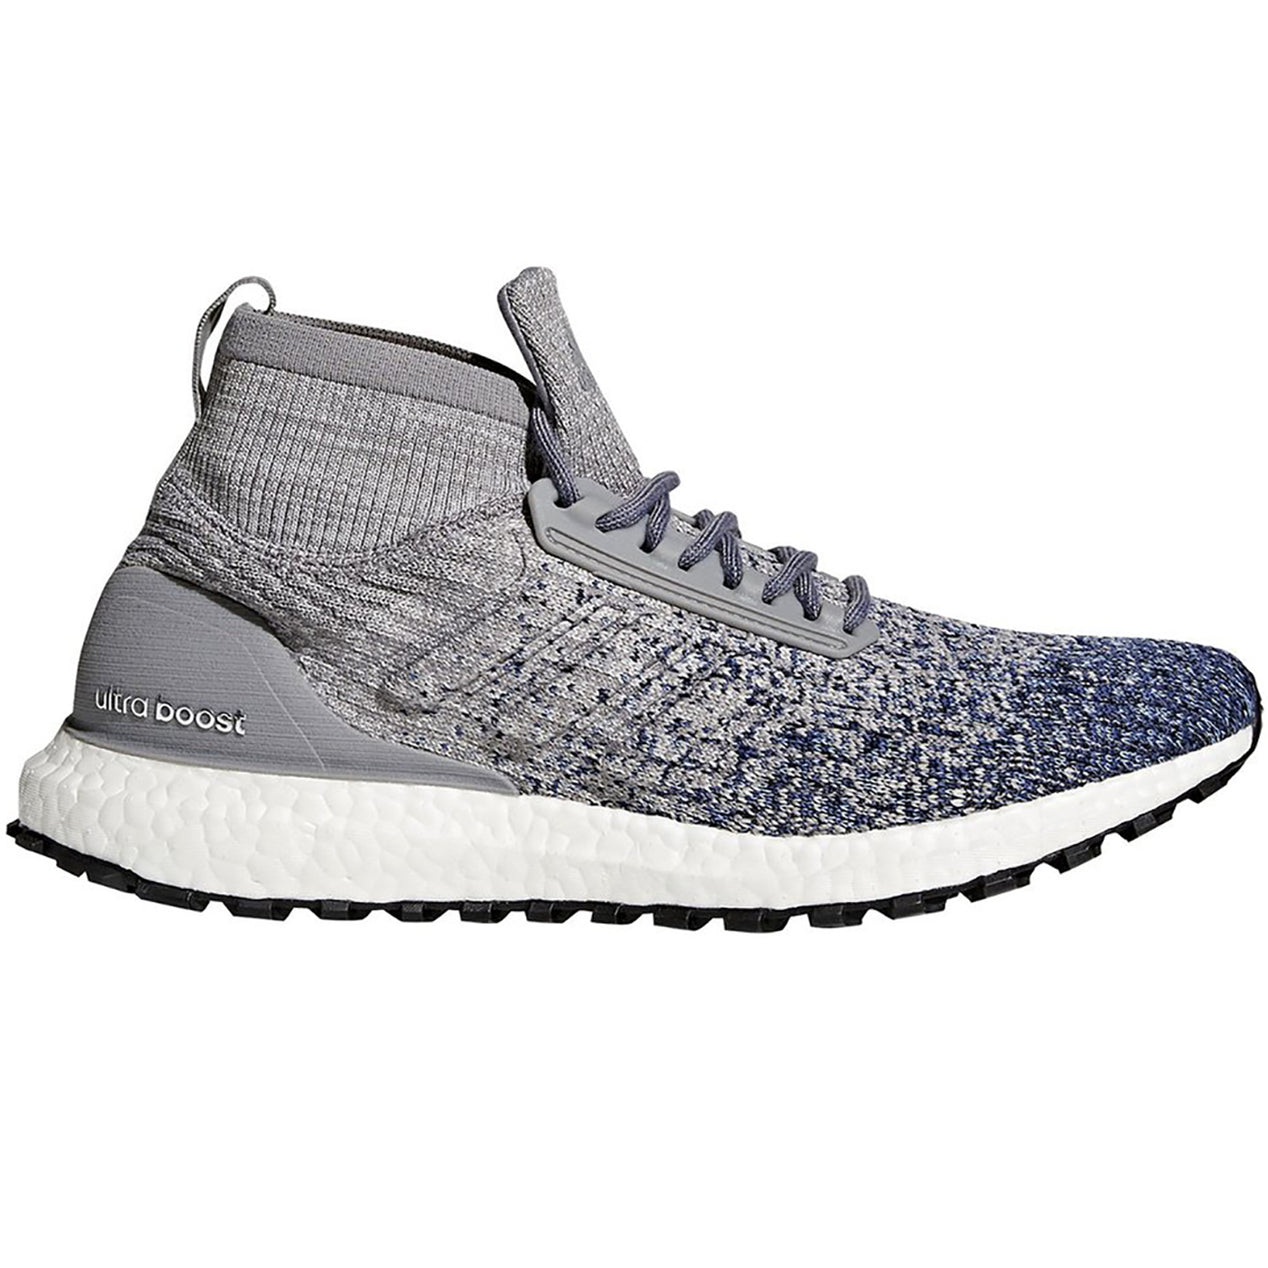 0a1cd3d93 Adidas Ultraboost All Terrain Running Shoes - Men s